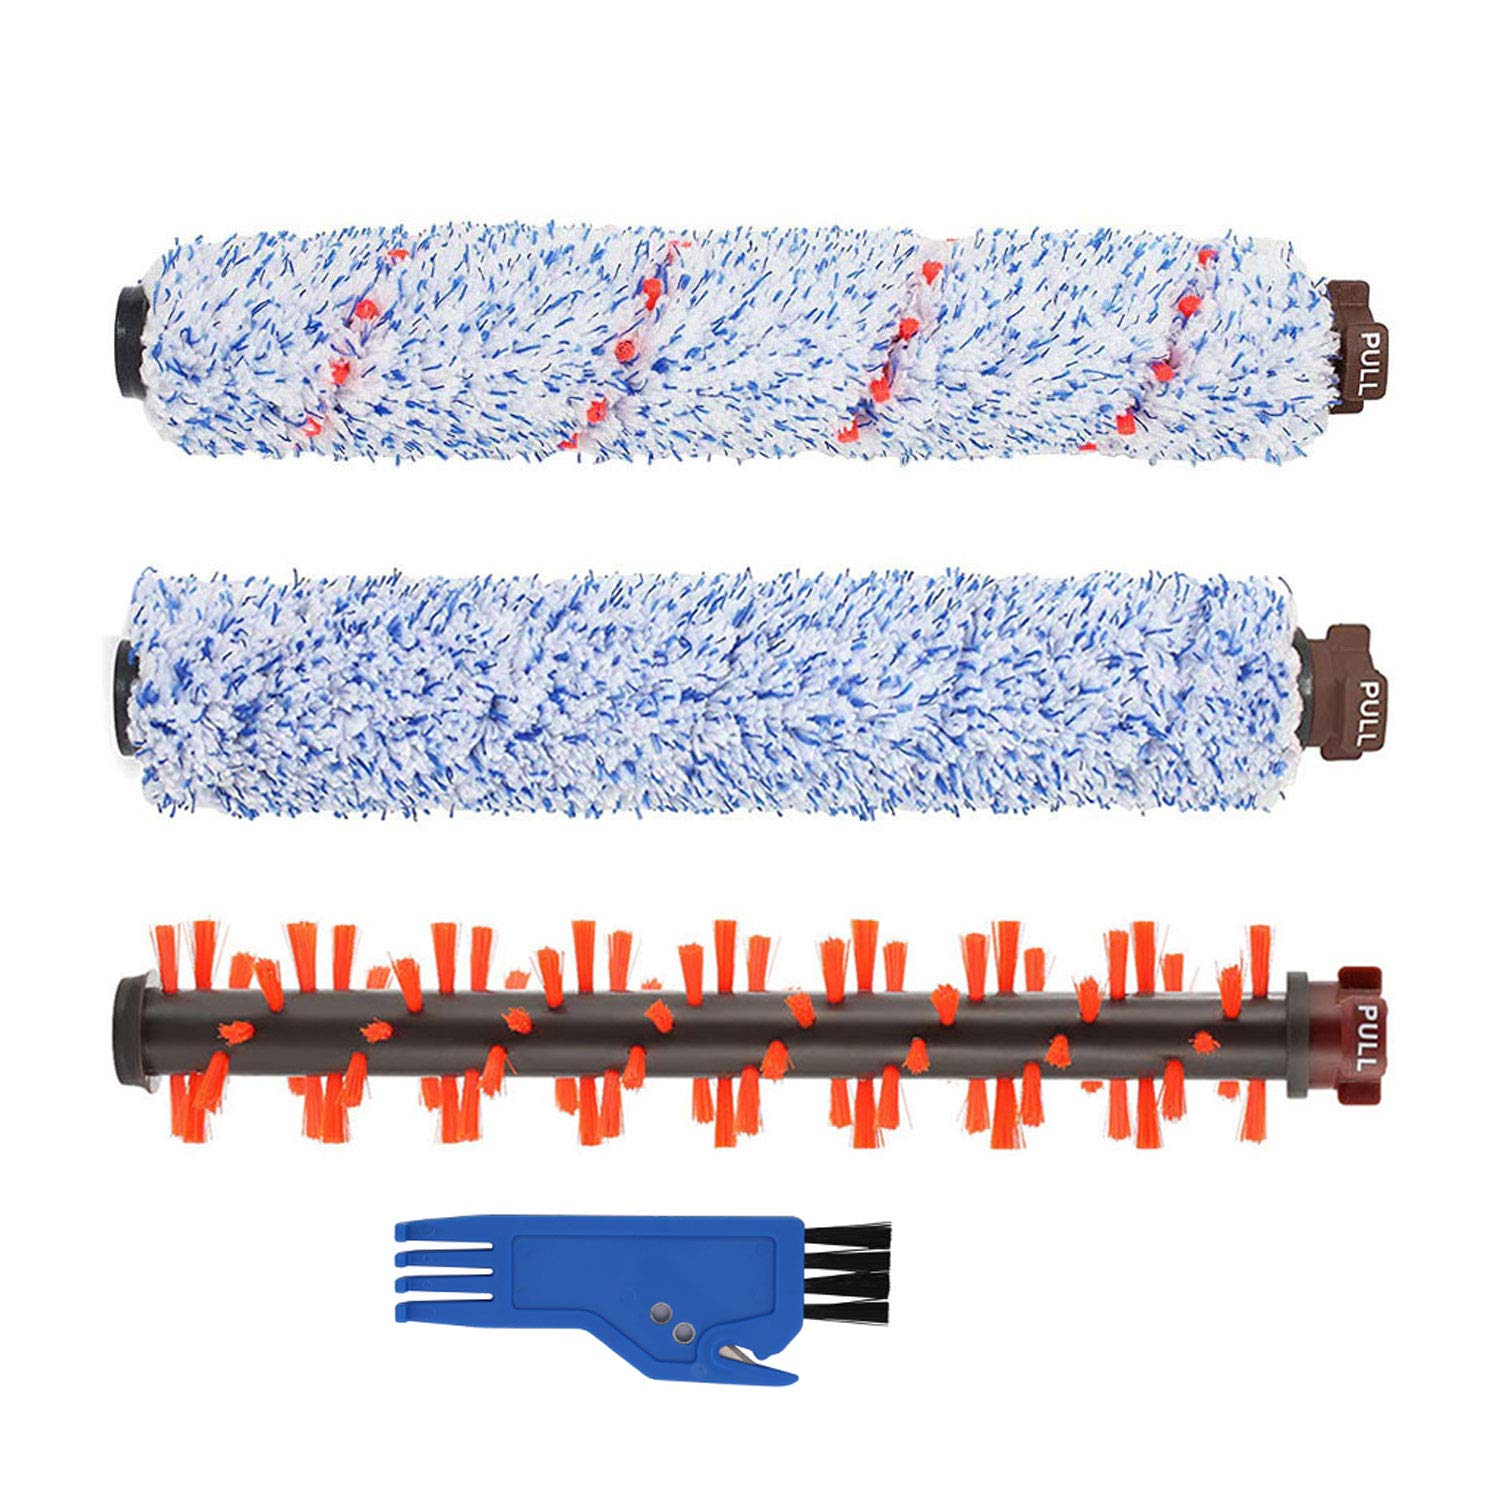 LesinaVac 1 Multi-Surface Brush Roll 1868 + 1 Area Rug Brush Roll 1934 + 1 Wood Floor Brush Roll 1926 Replacement Compatible with Bissell CrossWave Cleaner